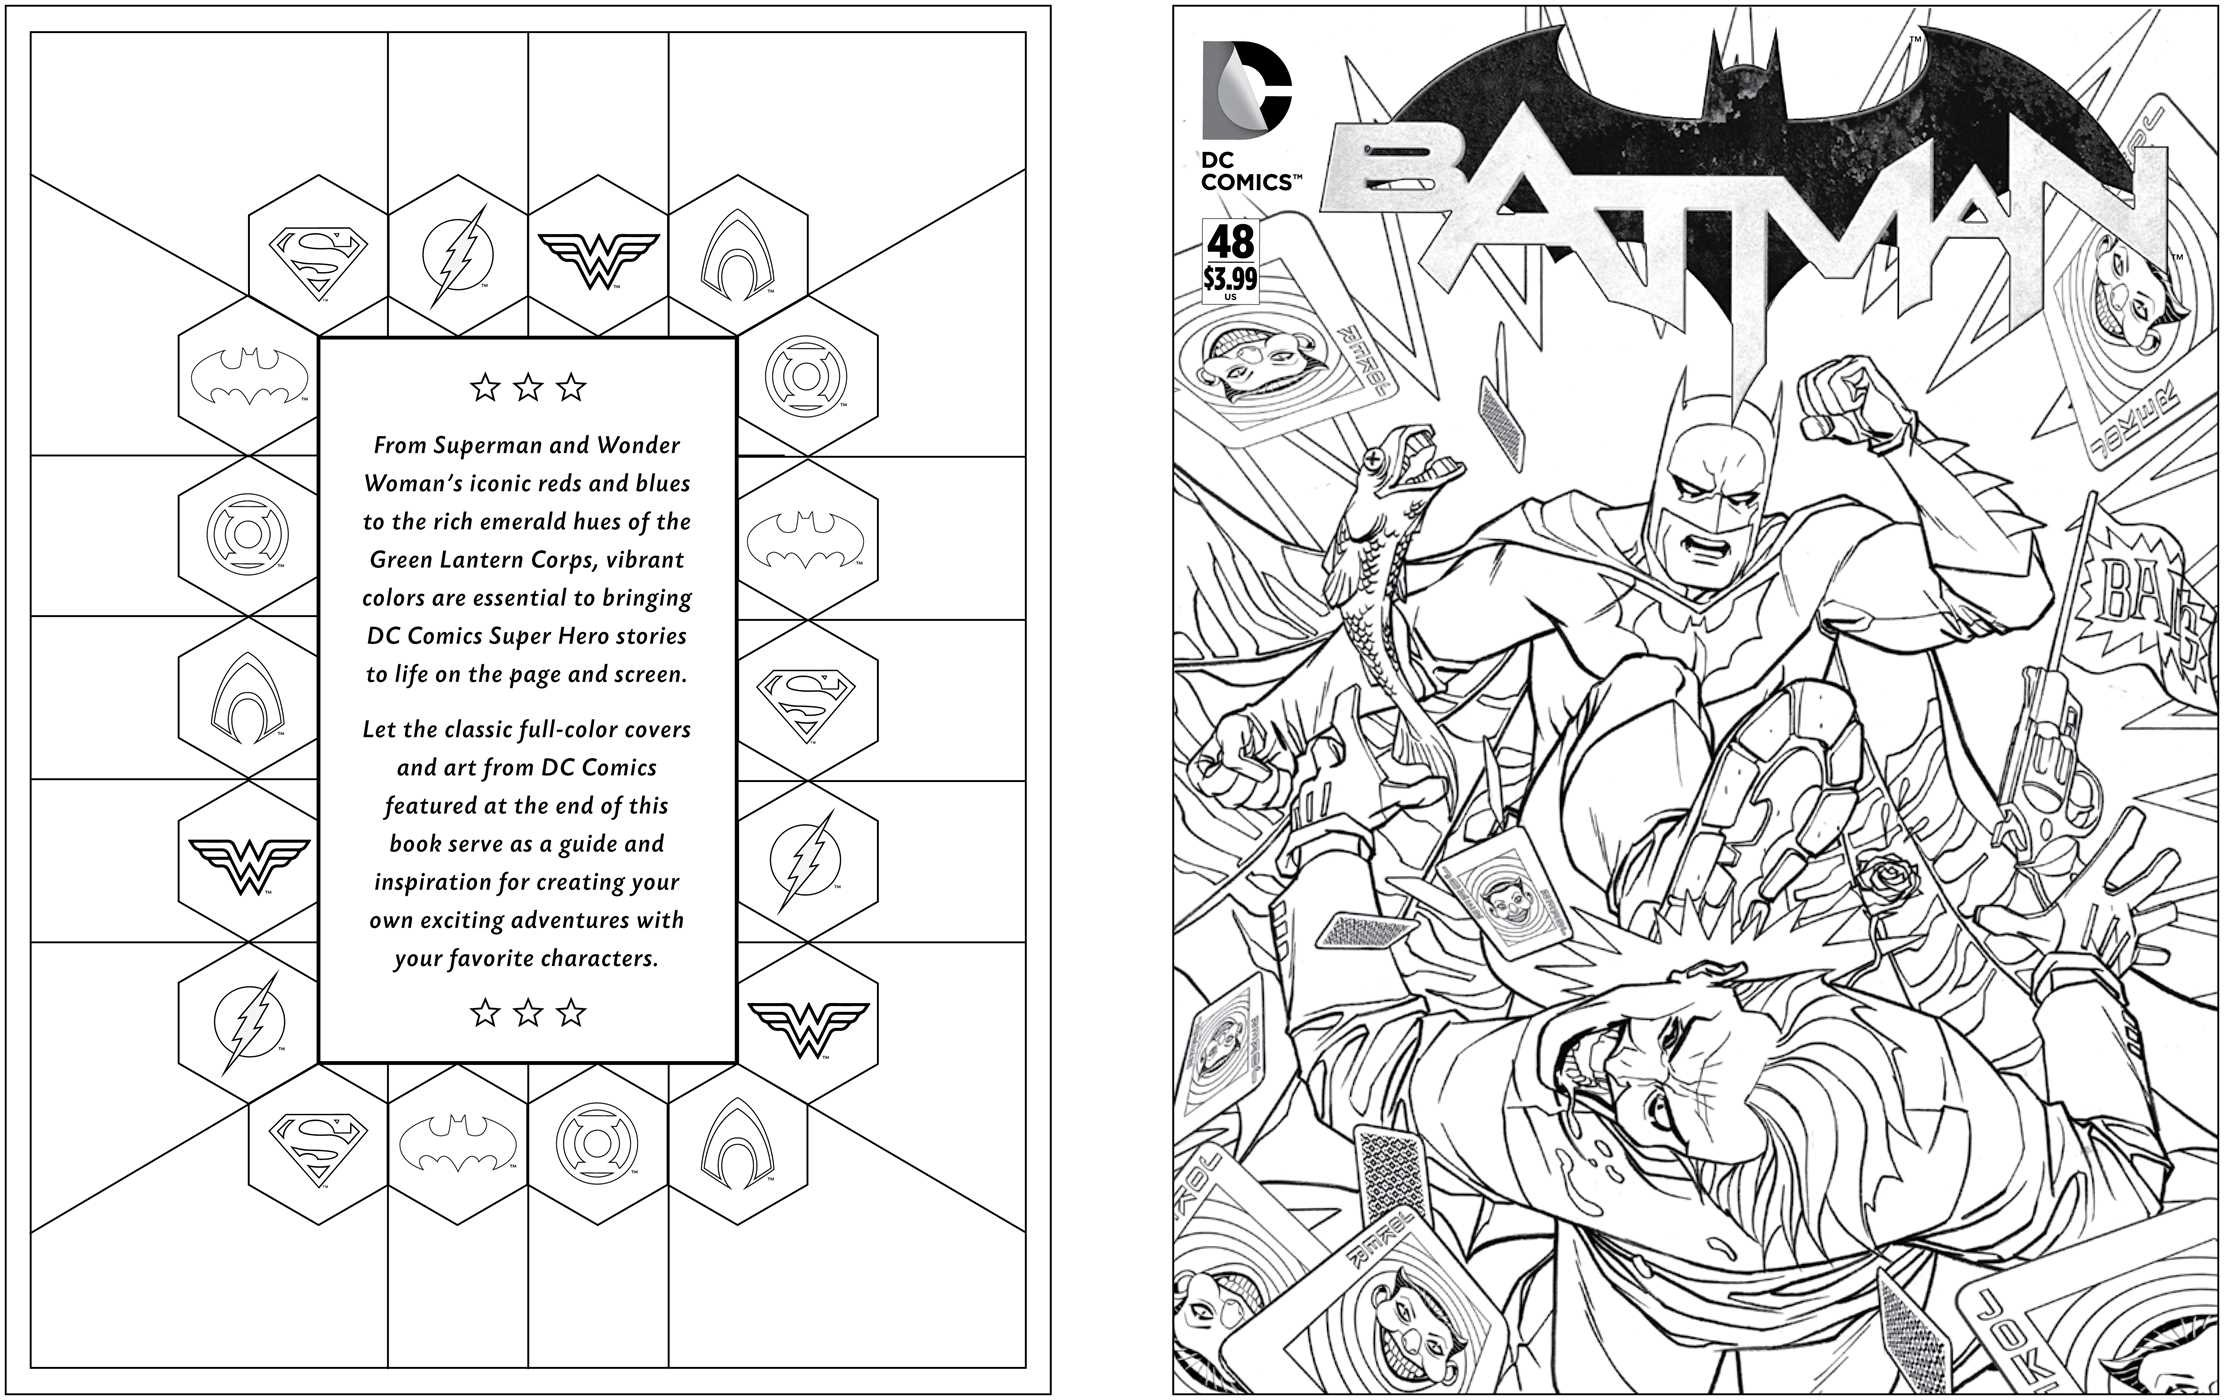 comic book coloring pages Amazon.com: DC Comics Coloring Book (9781608878291): Insight  comic book coloring pages